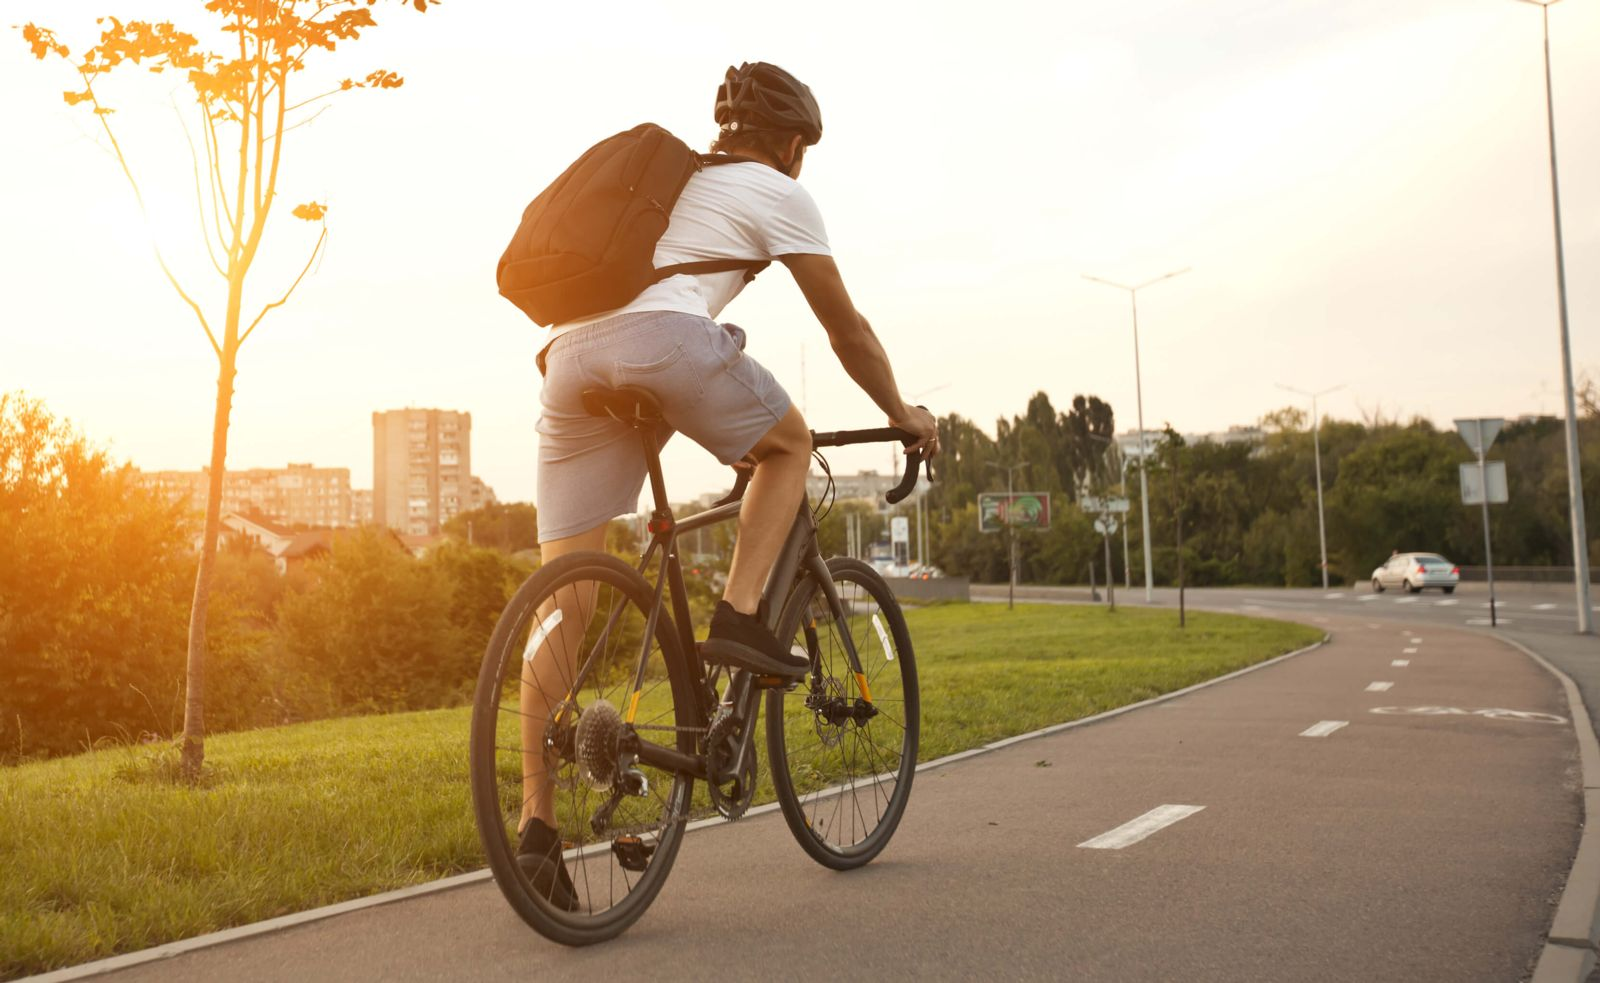 Texas Bicycle Safety The Hart Law Firm